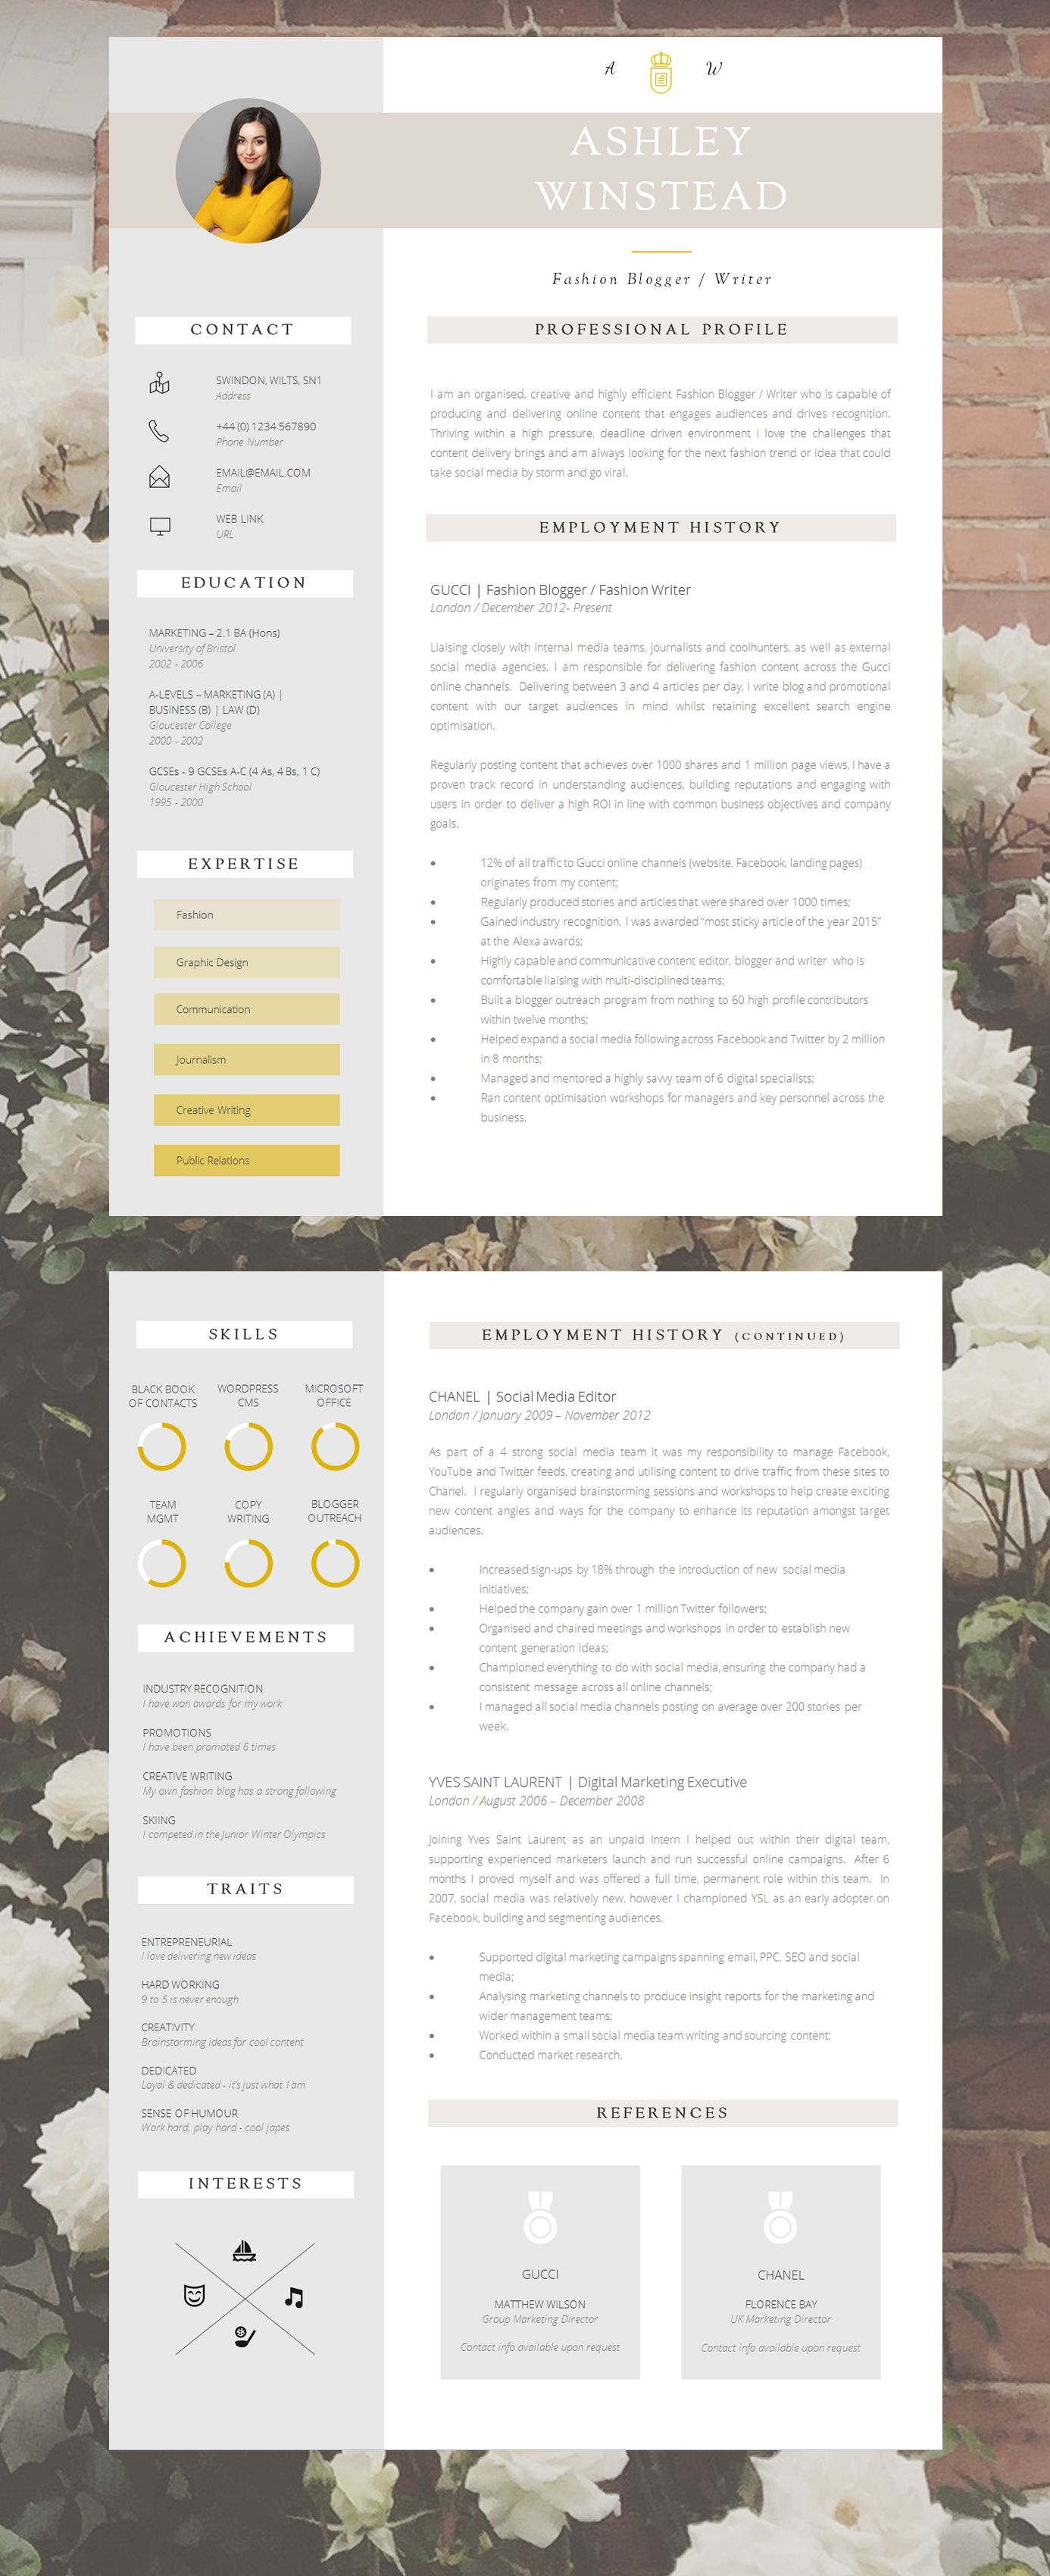 Generous 10 Envelope Template Big 1099 Excel Template Round 2 Column Website Template 2014 Blank Calendar Template Youthful 2015 Calendars Templates Coloured2015 Resume Keywords Resume Template : More Than One Page Format Archives Online ..